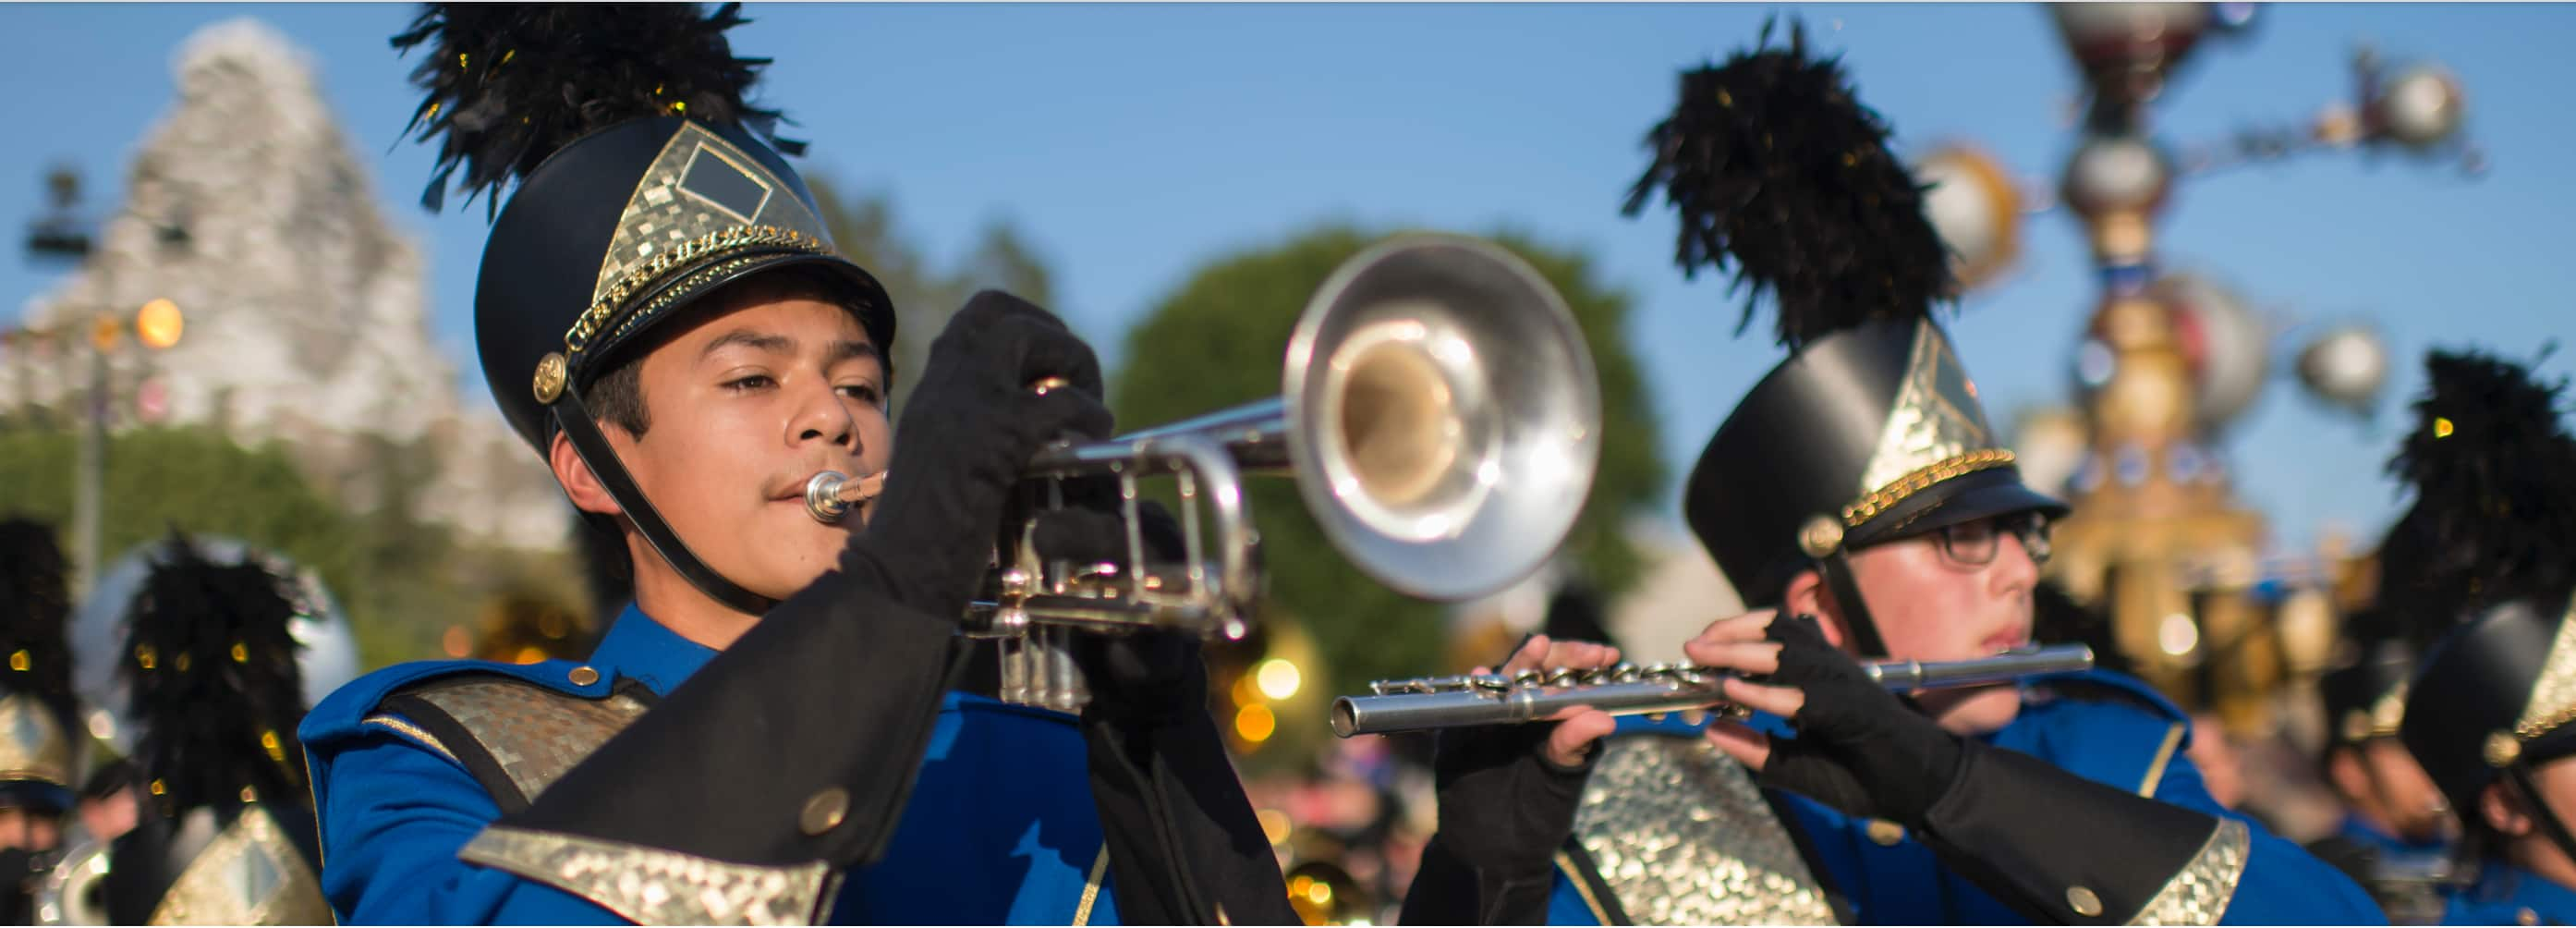 A boy playing a trumpet and a girl playing a flute perform in a high school marching band